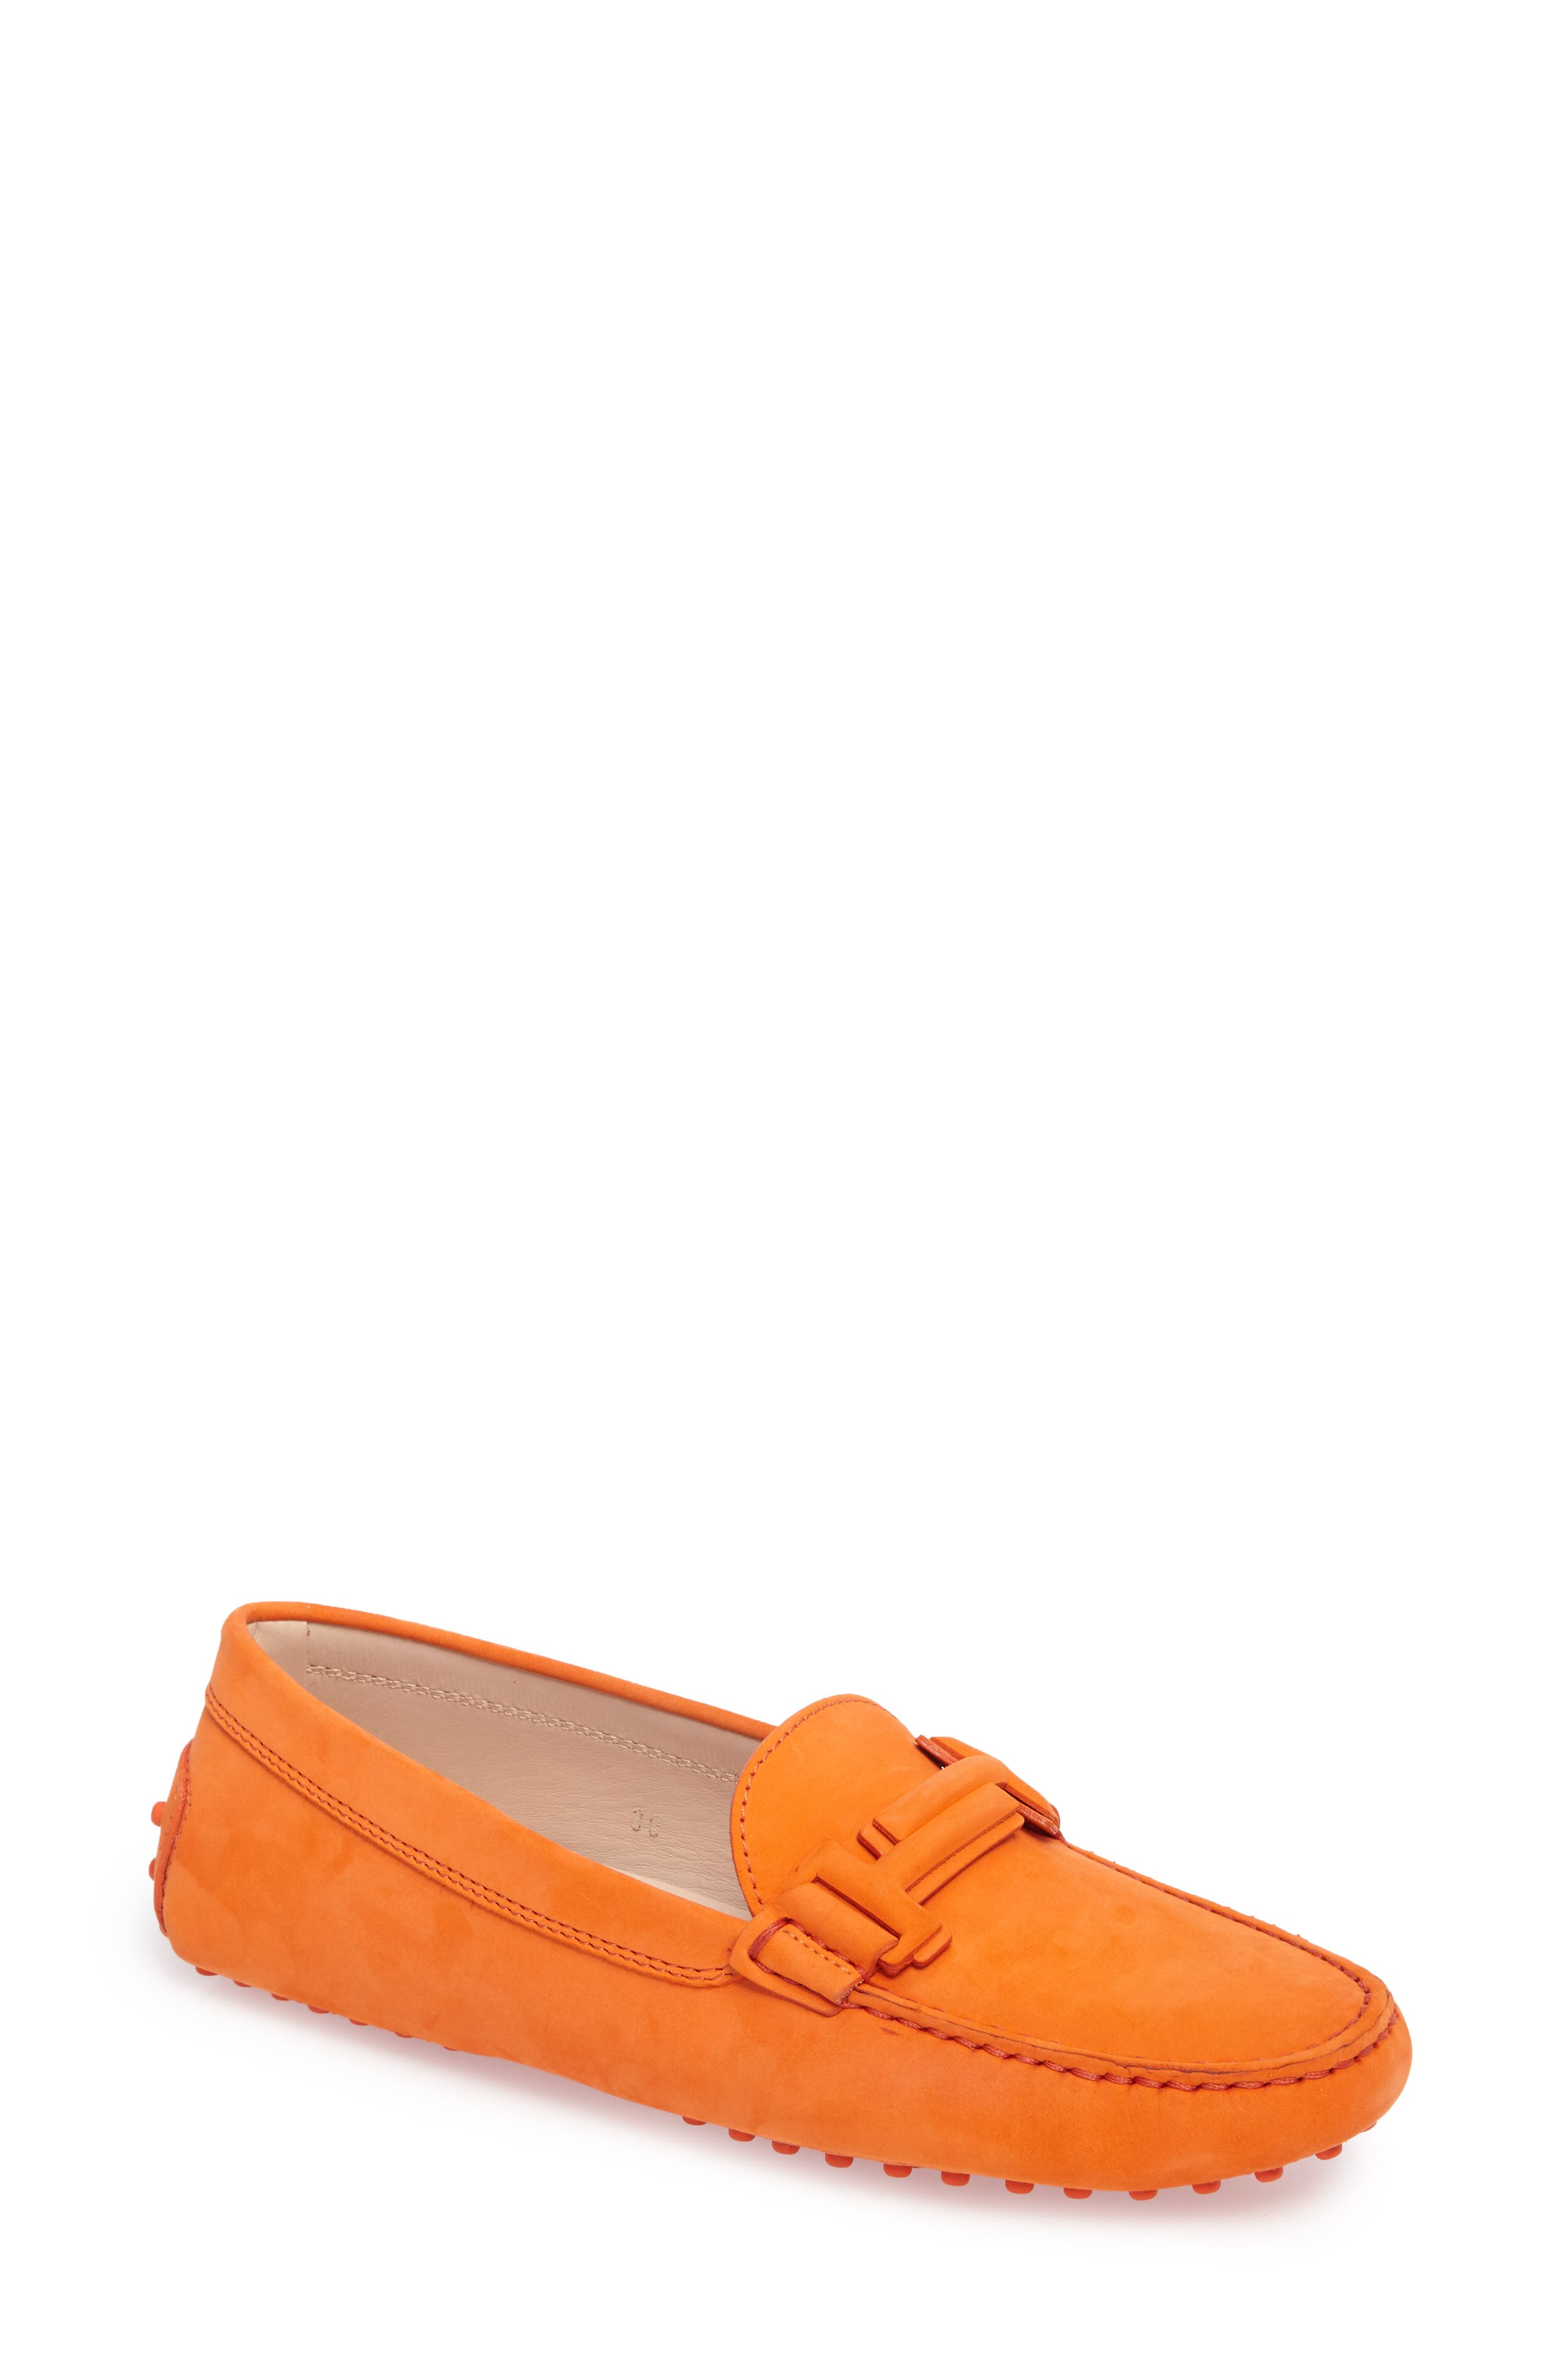 Gommini Covered Double T Loafer,                             Main thumbnail 1, color,                             Orange